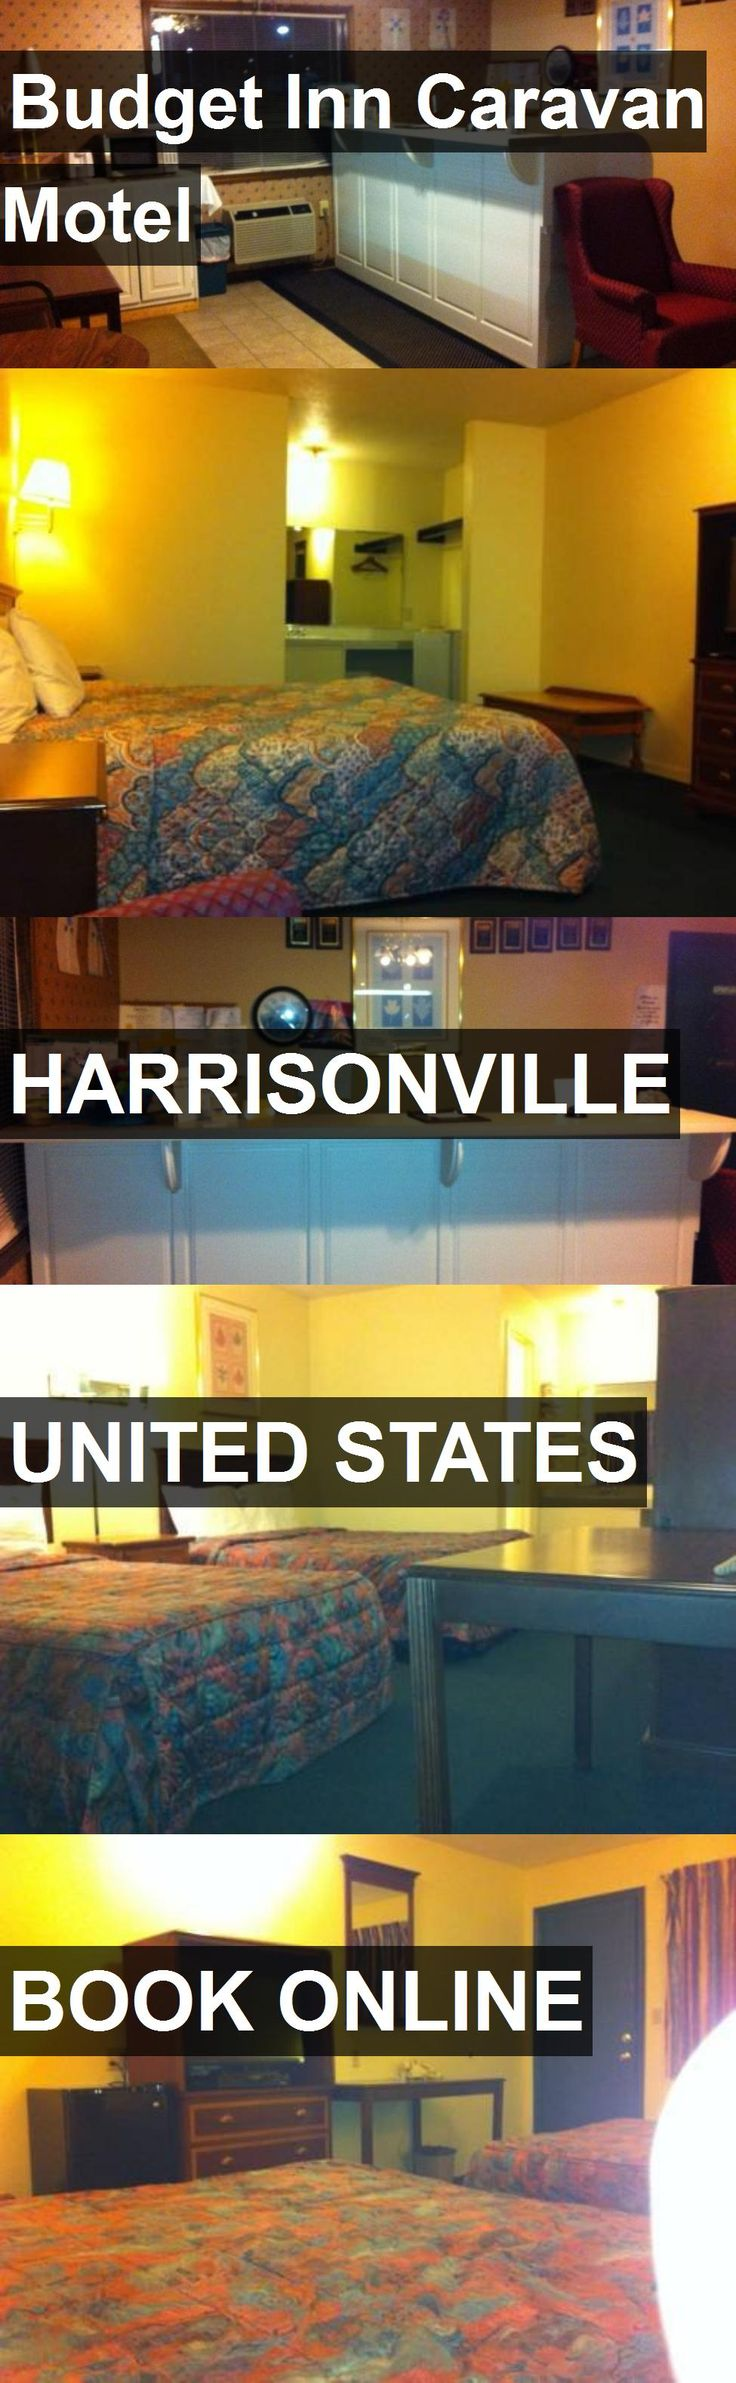 Hotel Budget Inn Caravan Motel in Harrisonville, United States. For more information, photos, reviews and best prices please follow the link. #UnitedStates #Harrisonville #travel #vacation #hotel